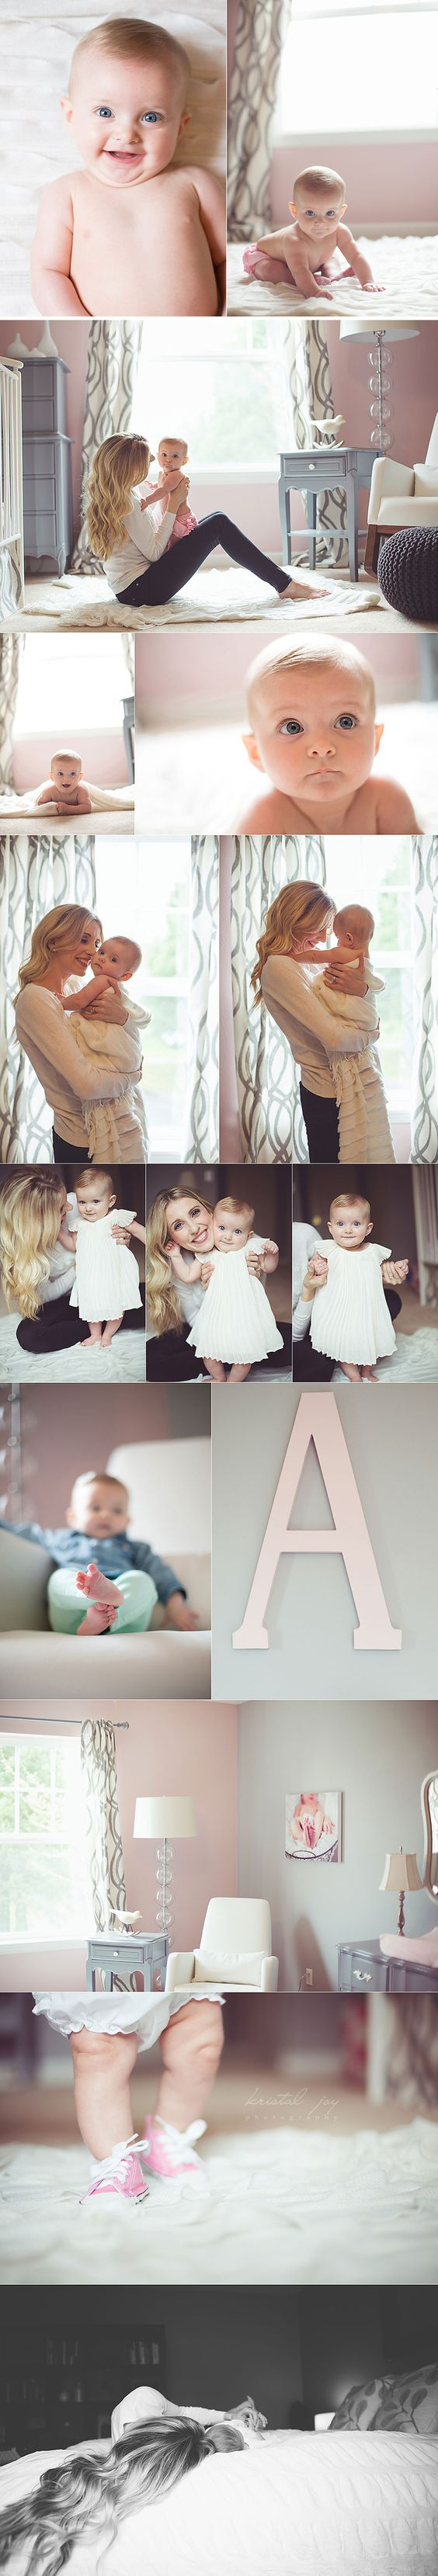 6 months   cute photography session @Kristin jones I could see this with Payton at your house